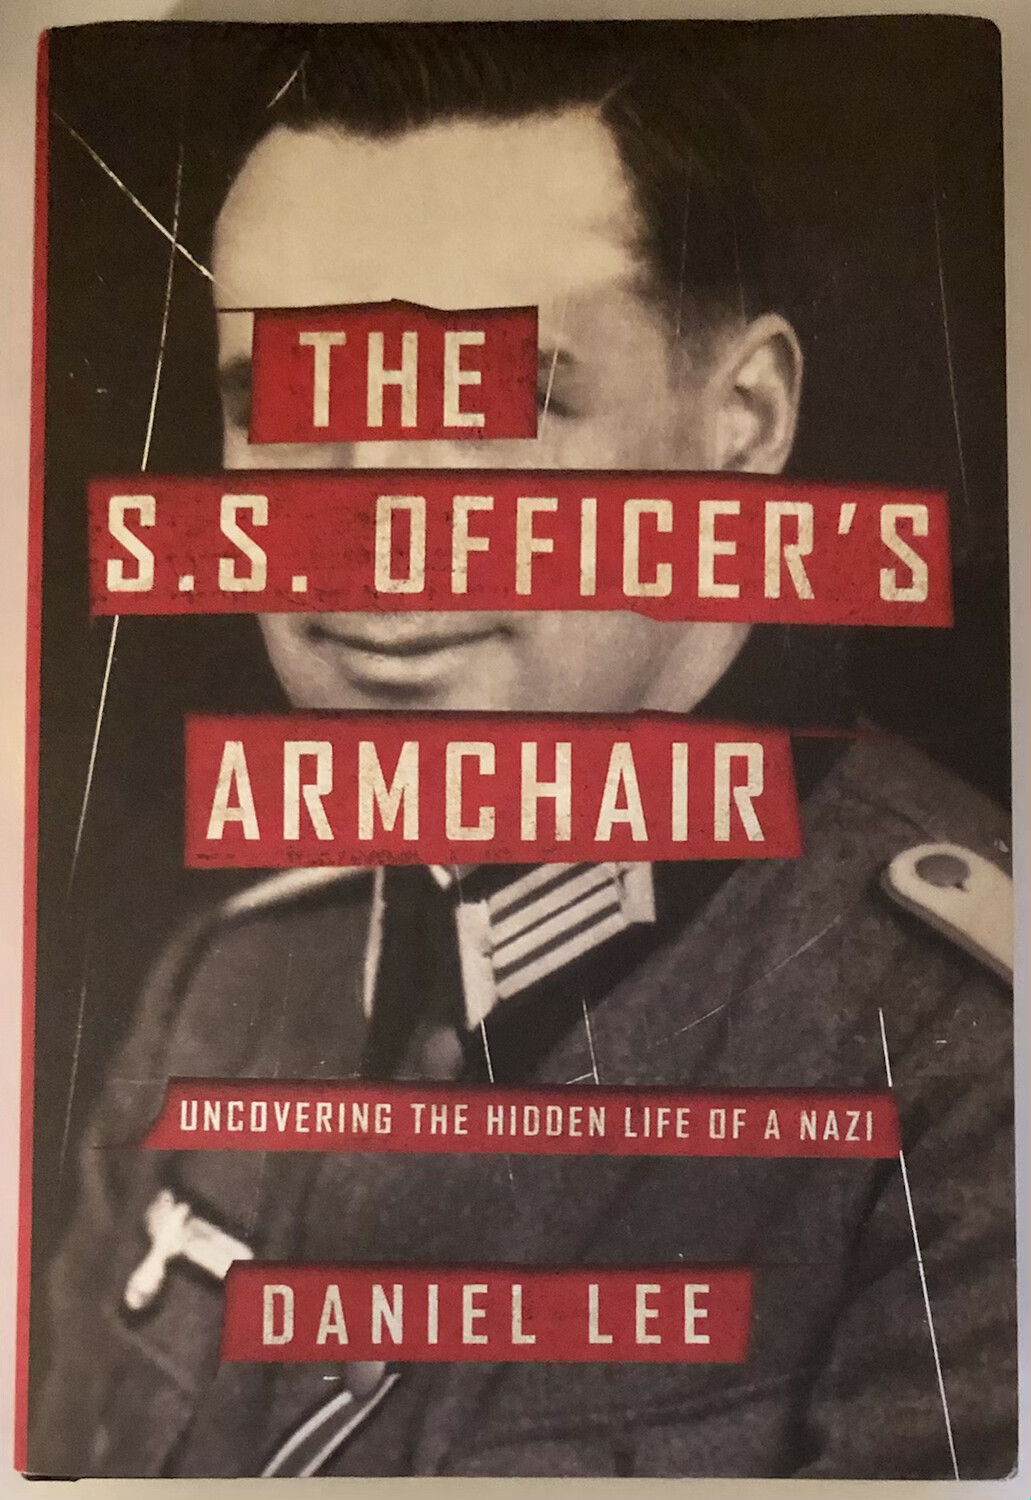 The S.S. Officer's Armchair: Uncovering the Hidden Life of a Nazi NEW, 30% OFF